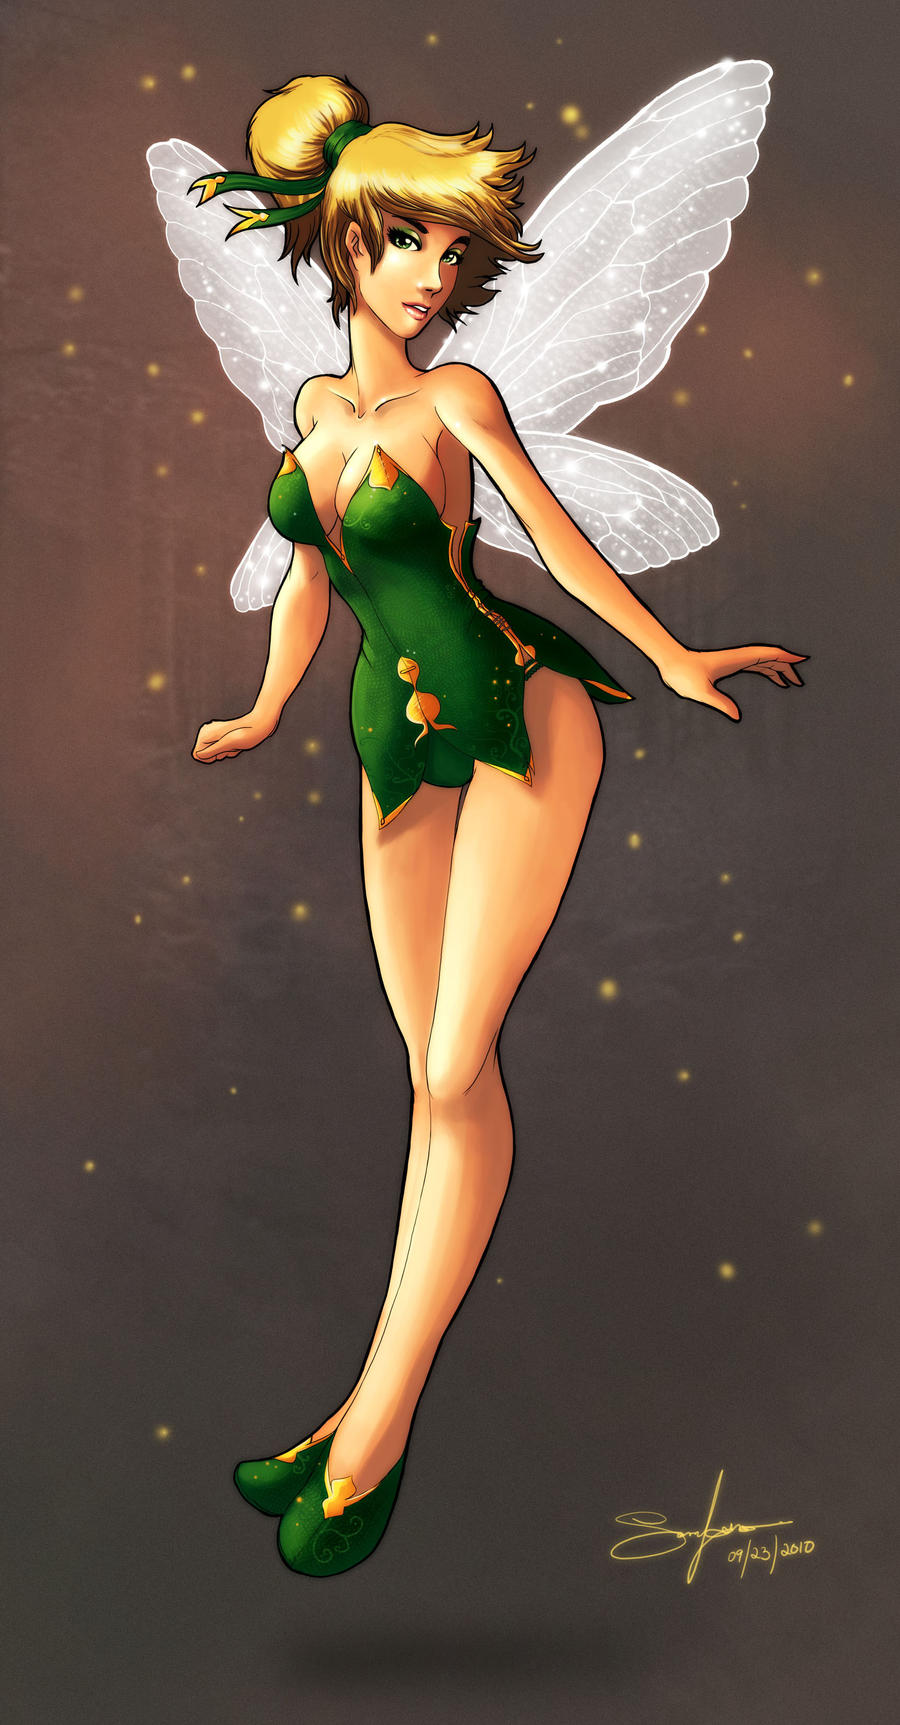 Hot tinker bell porno picture